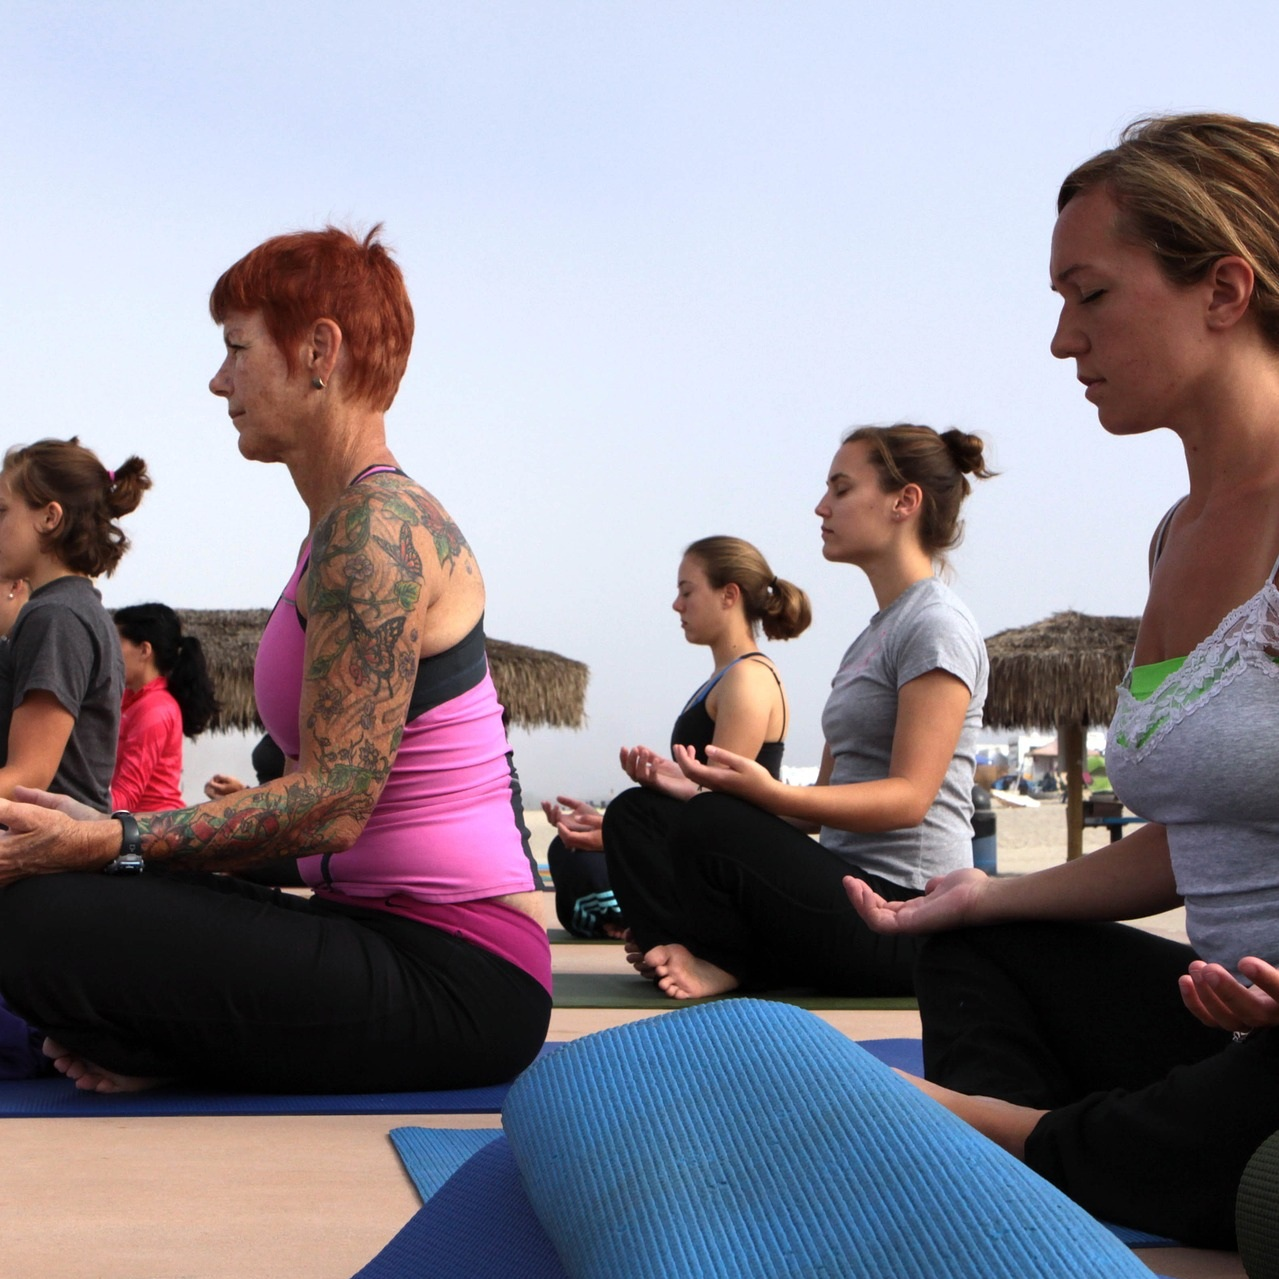 Women+Doing+Yoga+Together.jpg